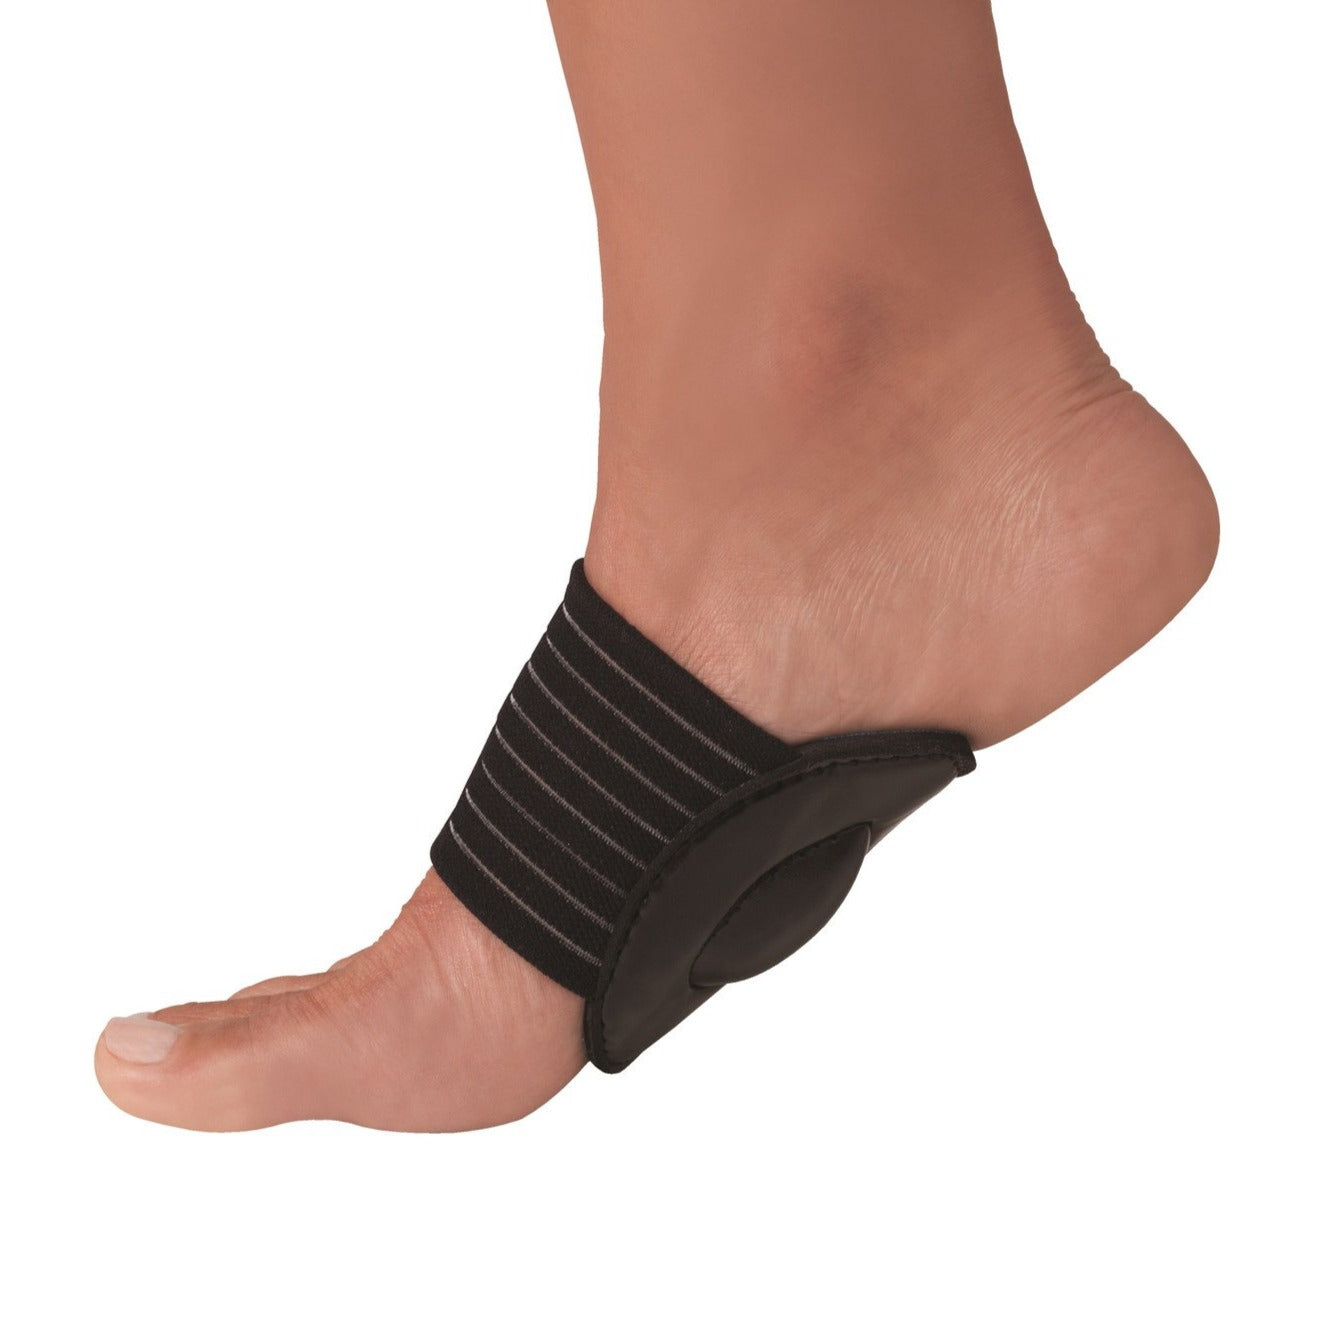 Patented Original Strutz Pro Cushioned Arch Support 1 Pair